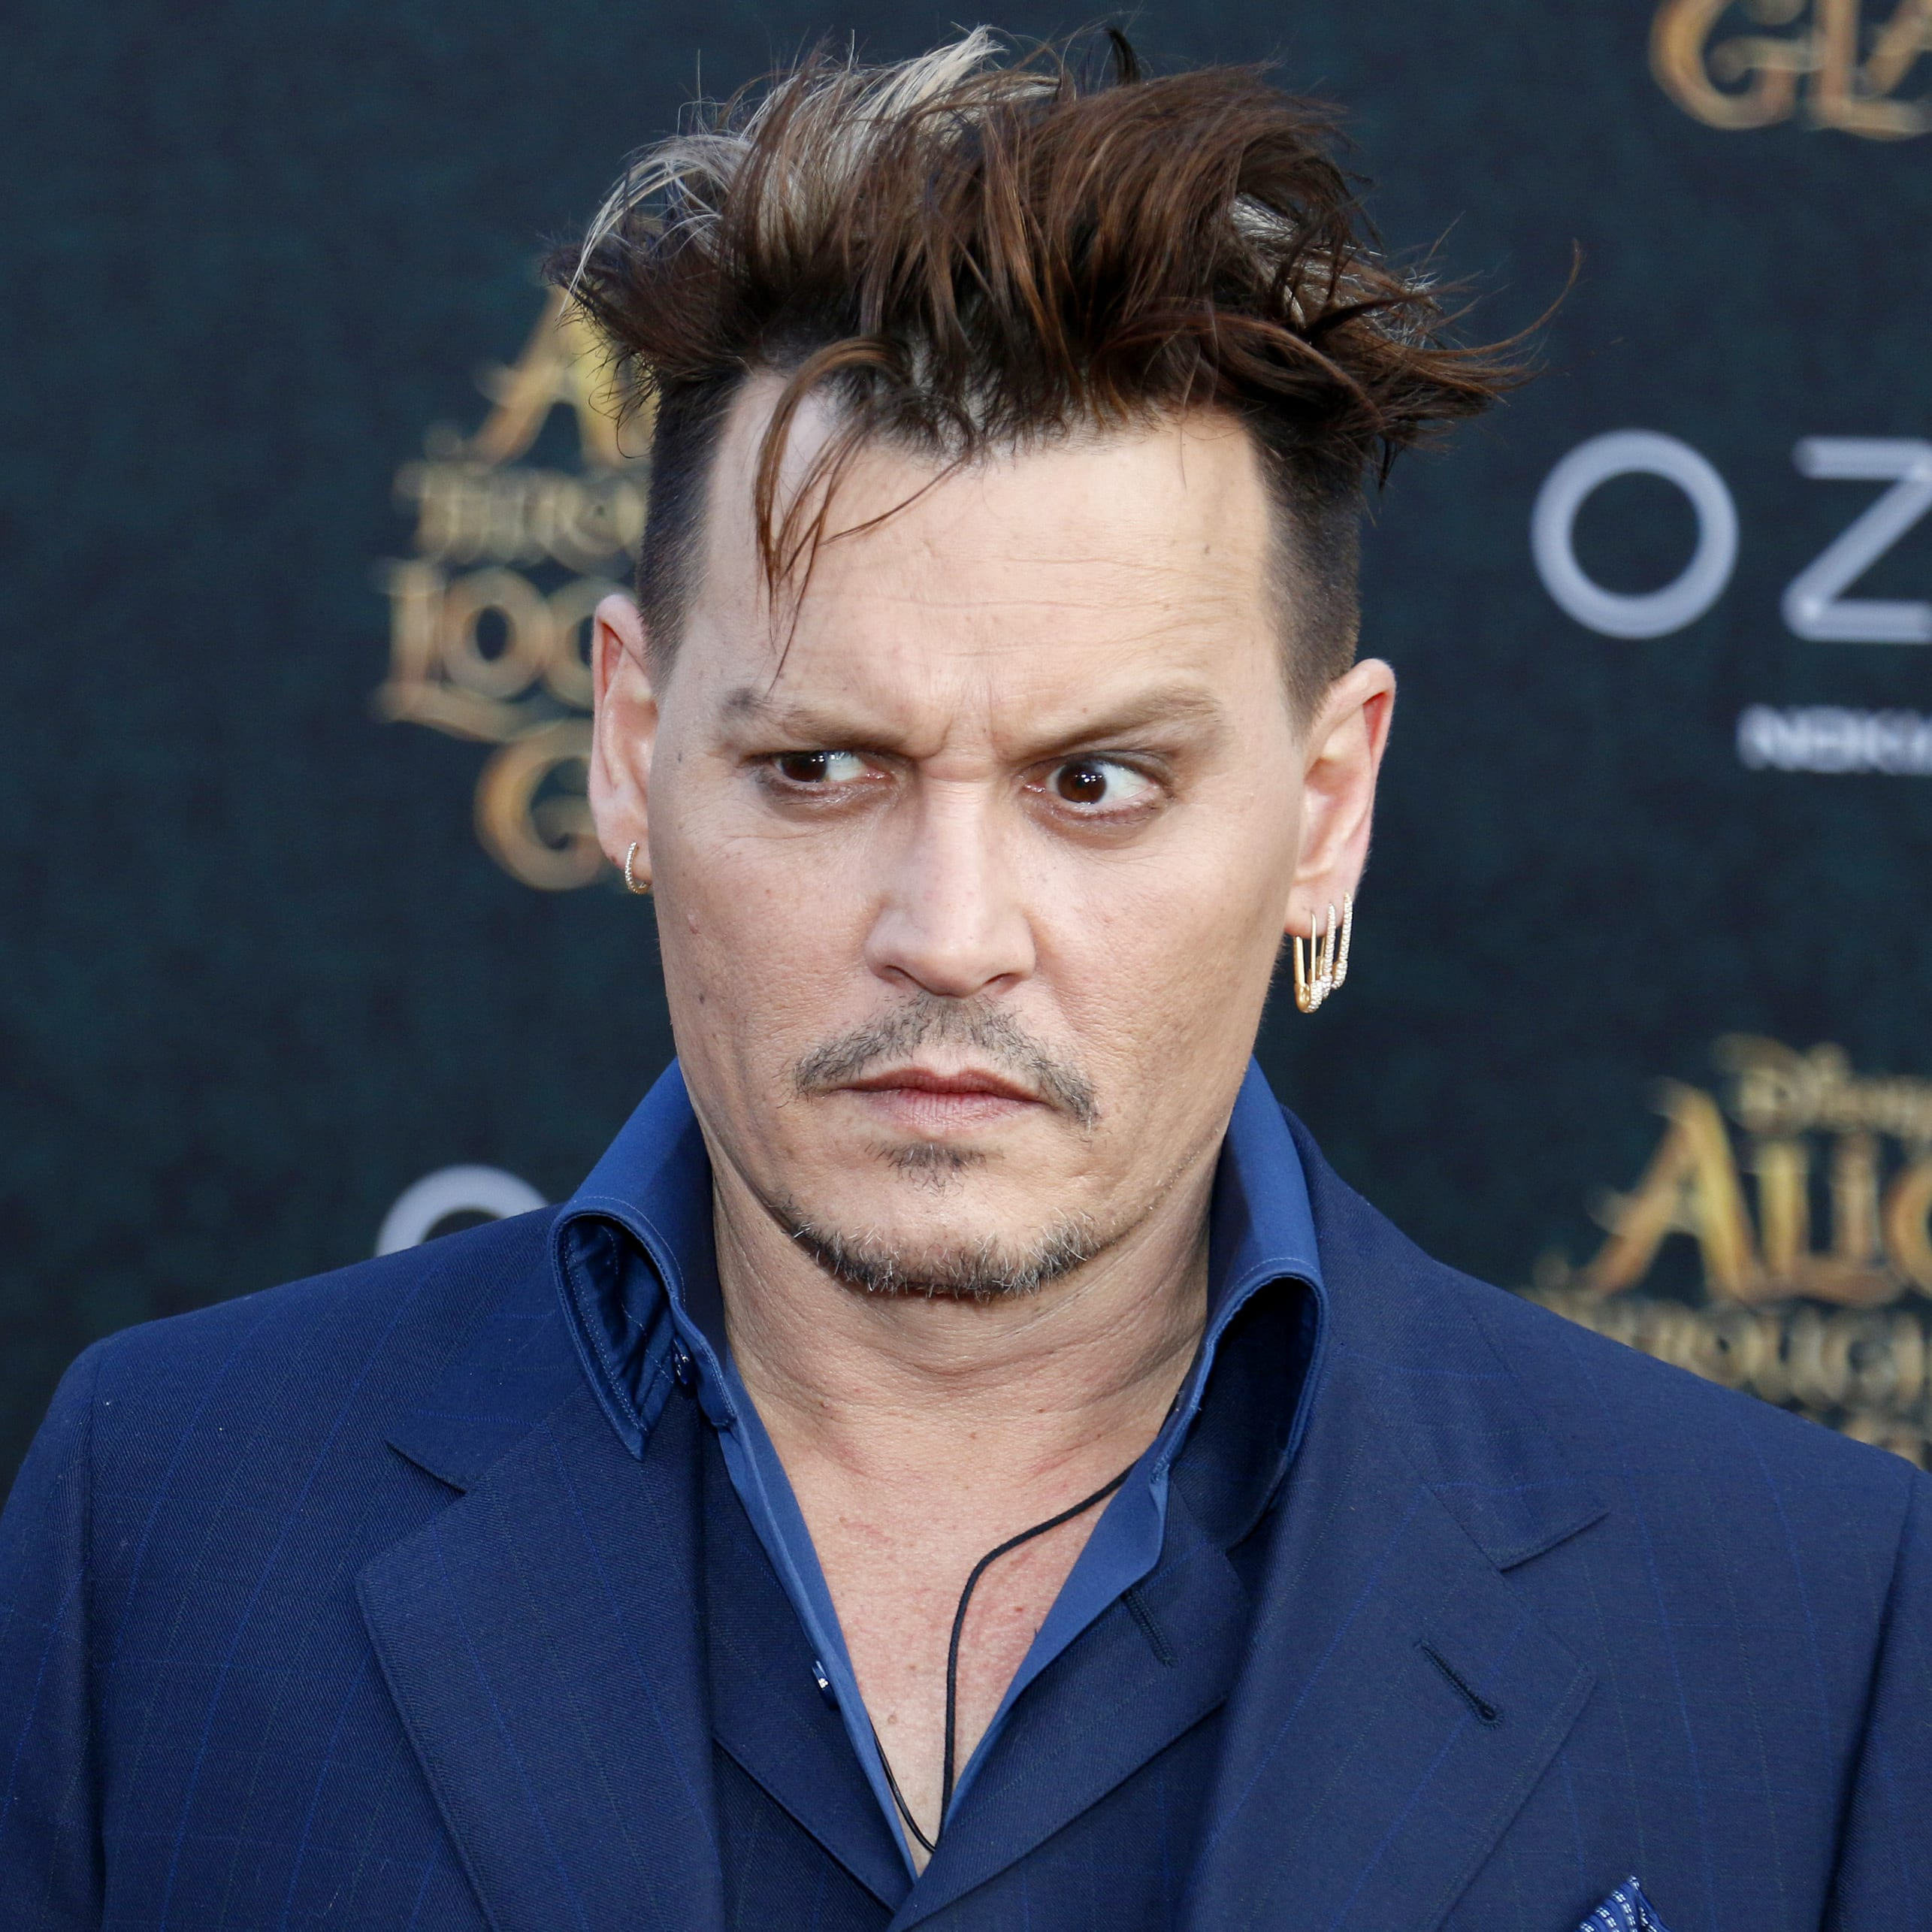 Johnny Depp's Edgy Haircut